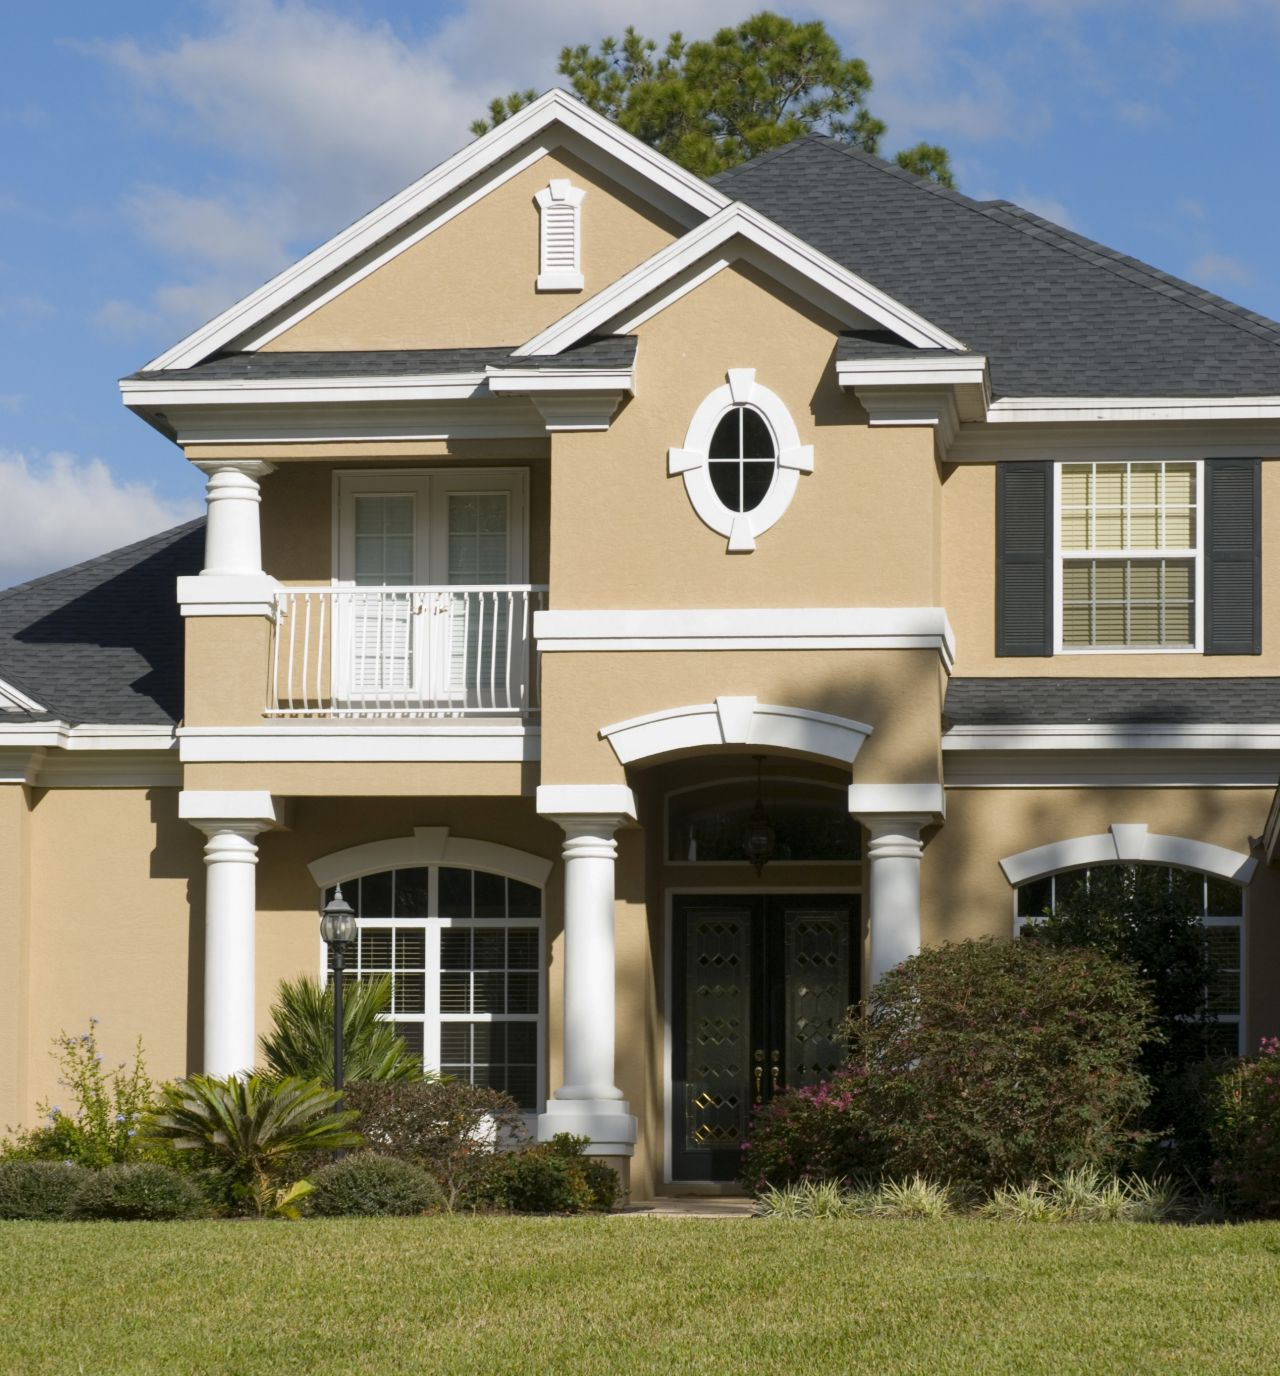 Exterior paint schemes and consider your surroundings for What is the best exterior paint